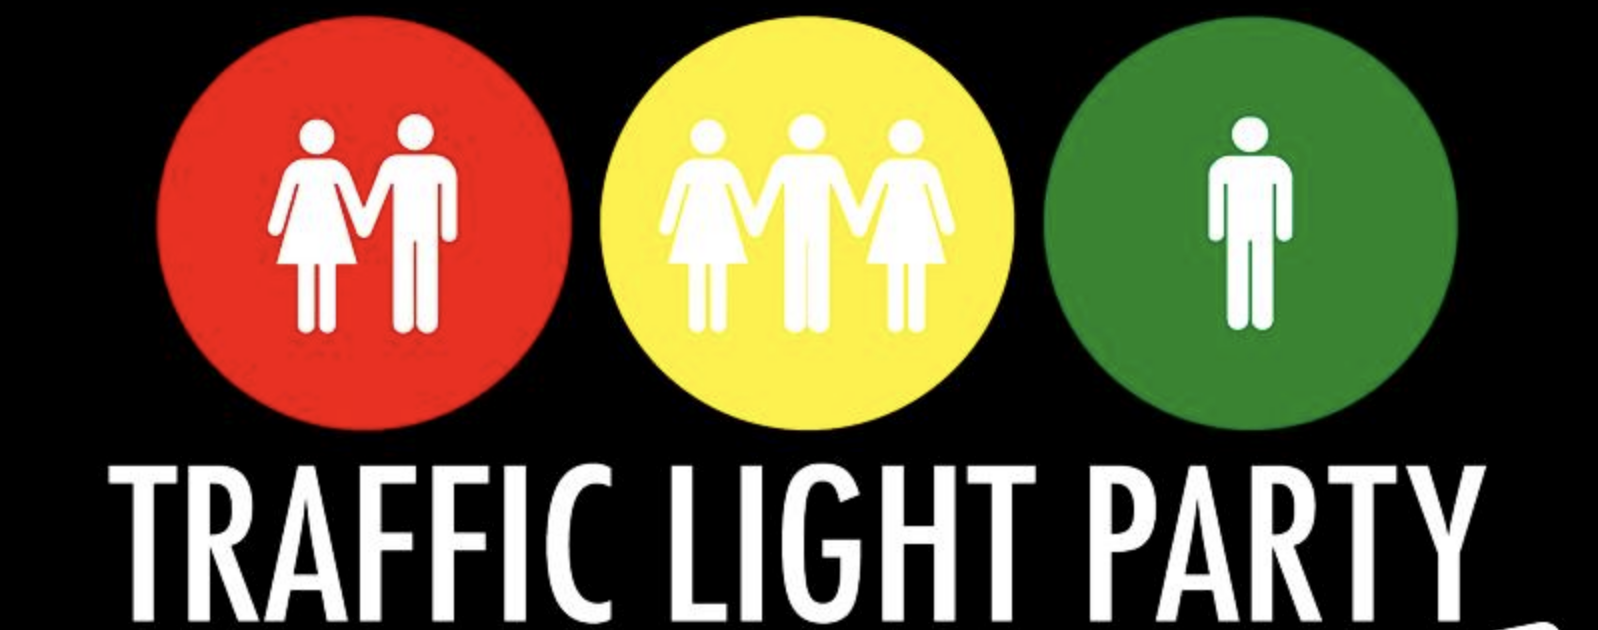 Stoplight Party.png